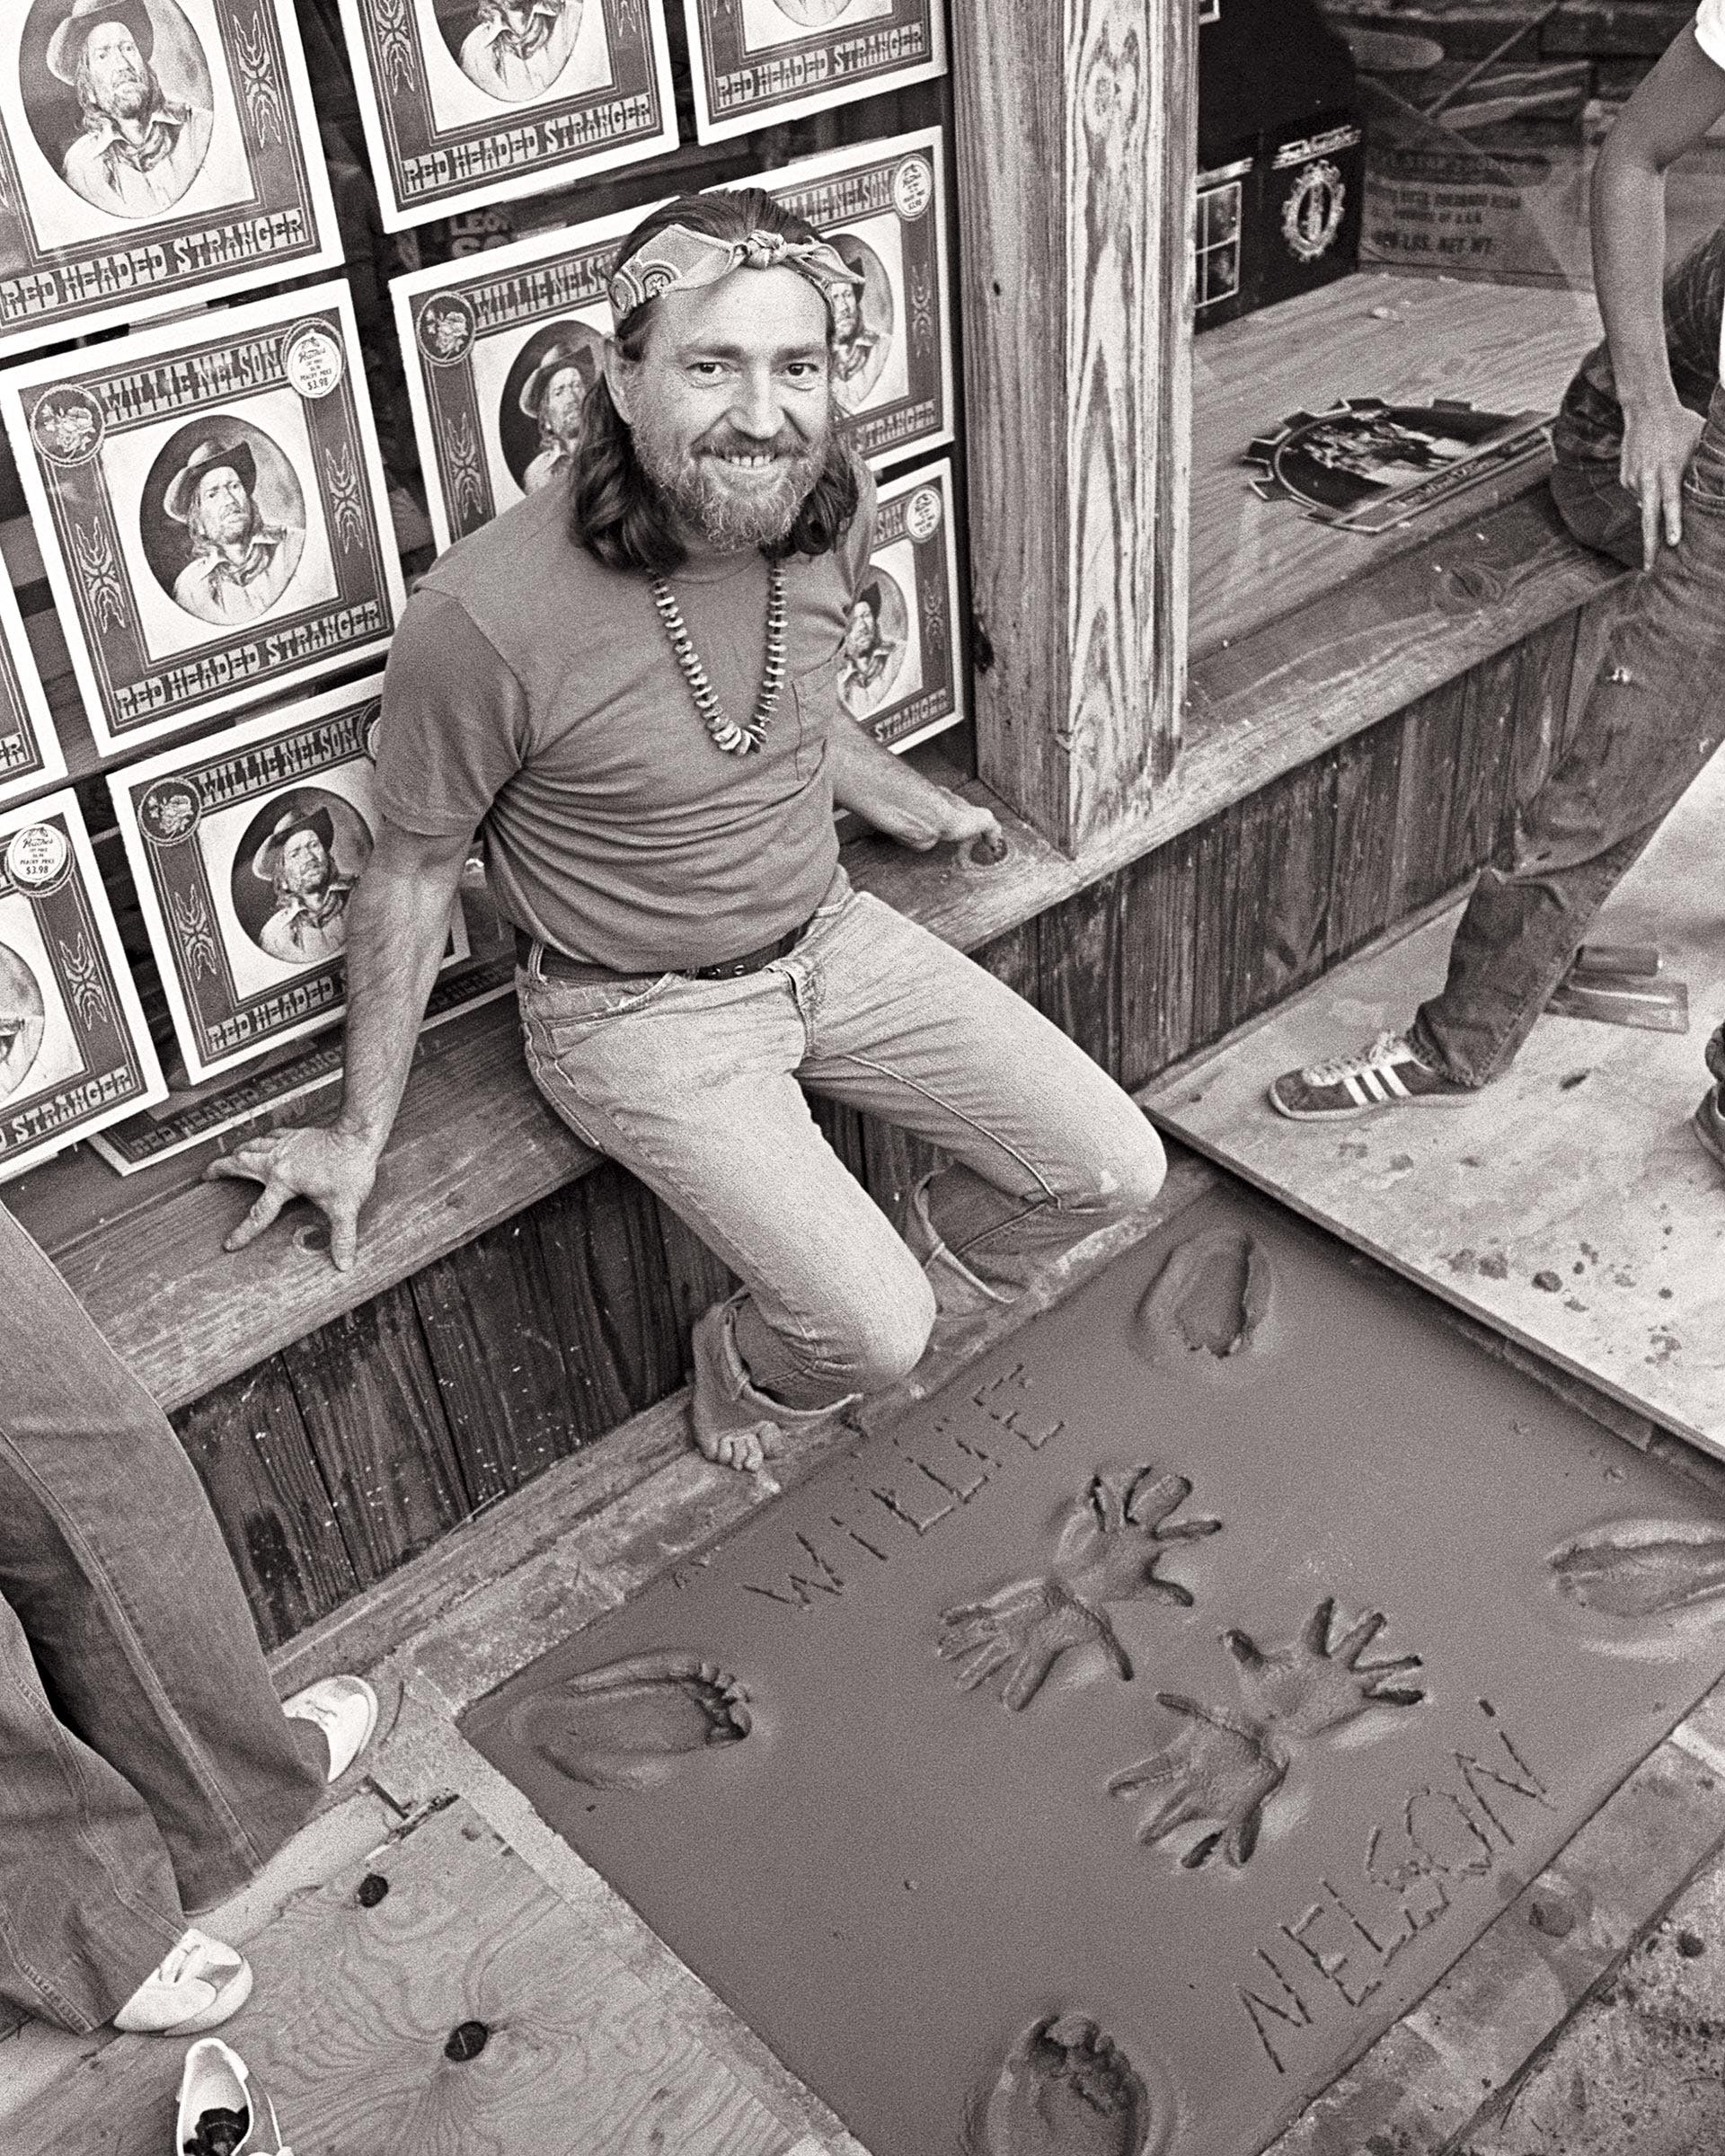 Willie casting his footprints and handprints during an in-store appearance promoting Red Headed Stranger at Peaches Records, in Atlanta, on October 28, 1975.